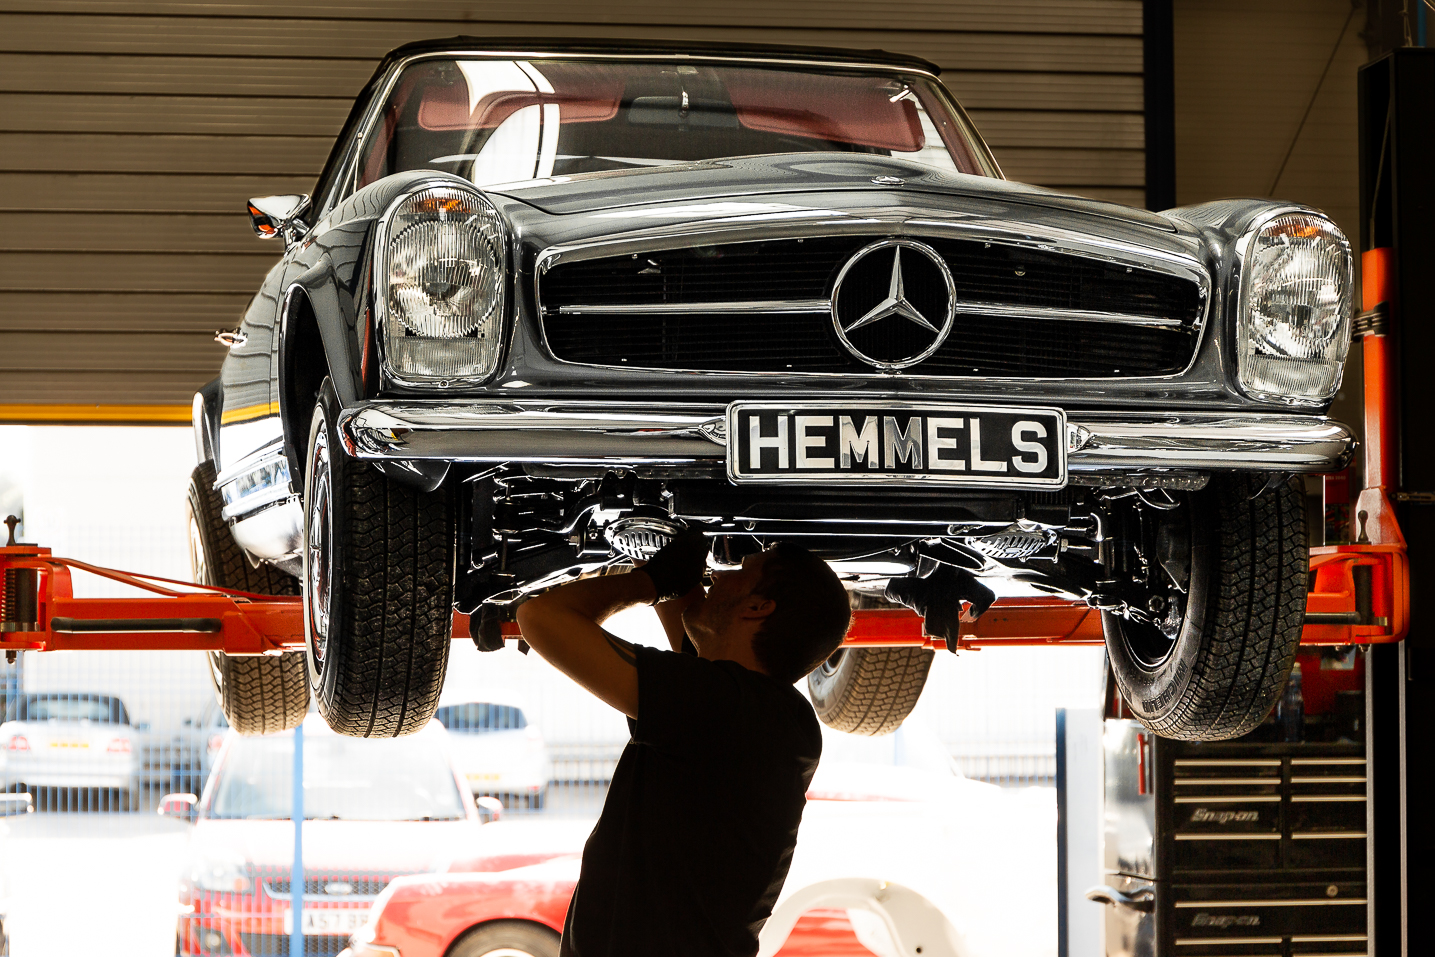 Hemmels engineer working on a Mercedes-Benz W113 280SL Pagoda